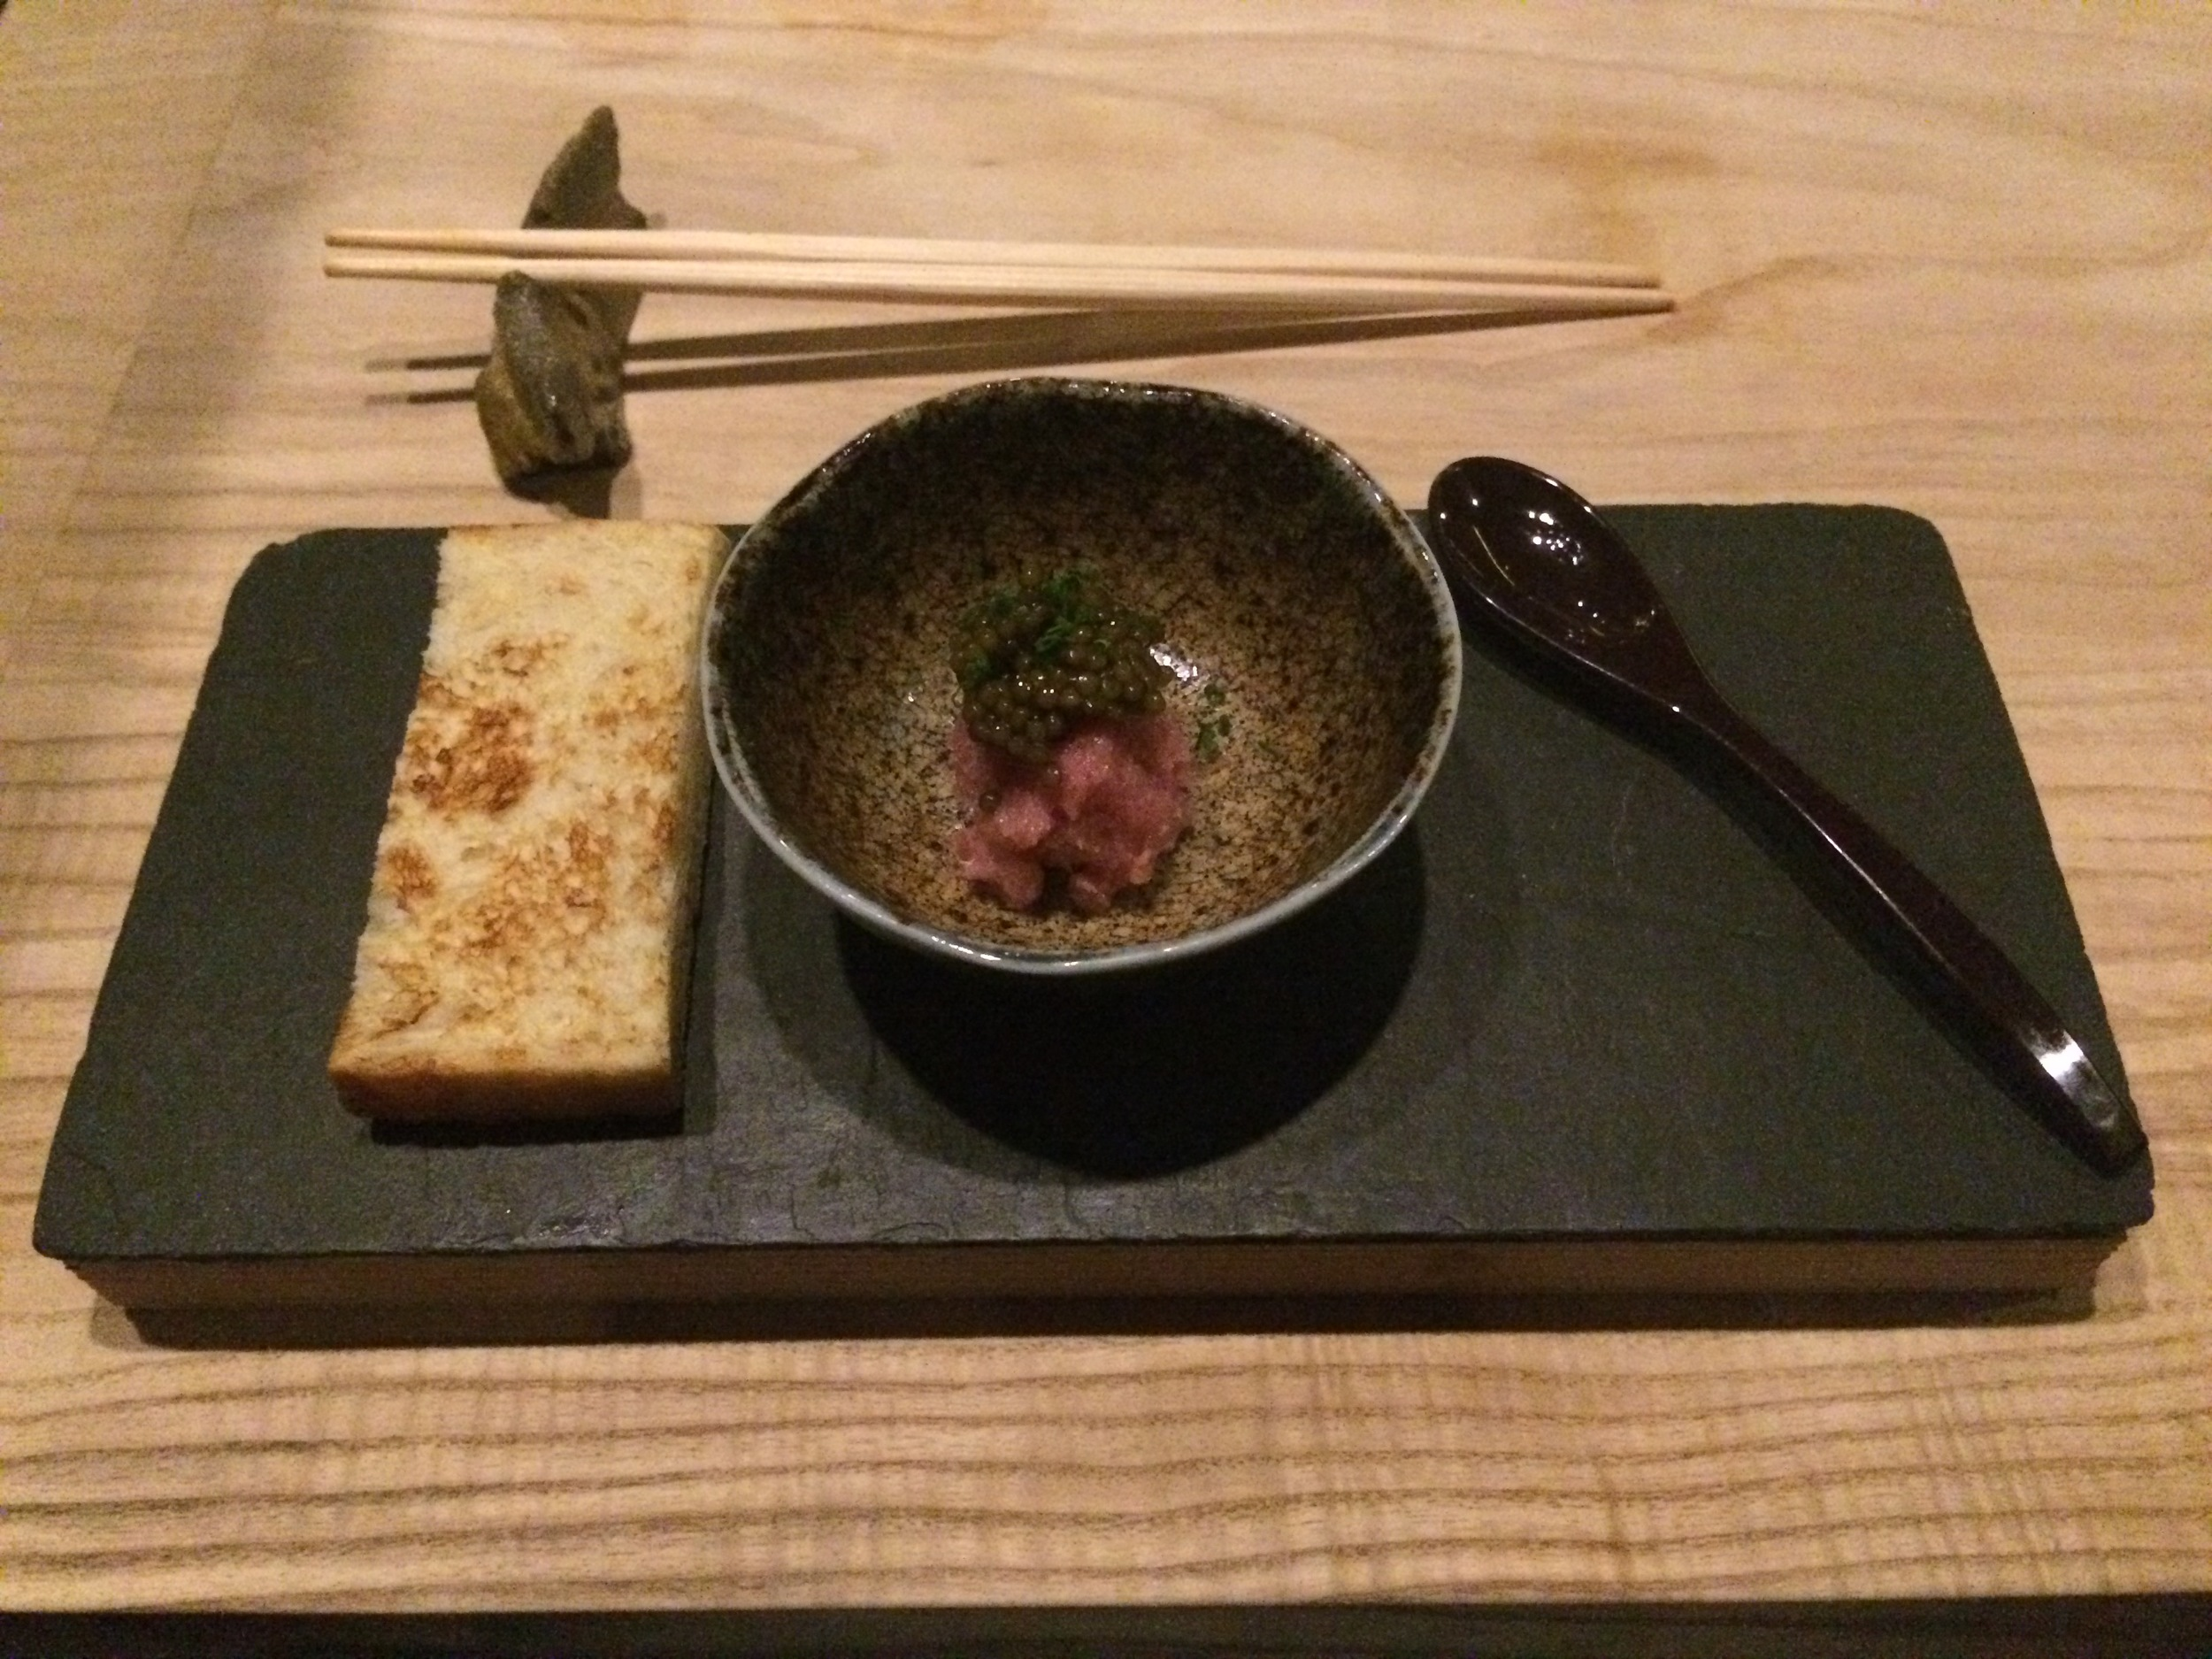 Milk Bread, Toro, and Caviar has become one of the most highly praised dishes on Shuko's Kaiseki menu.